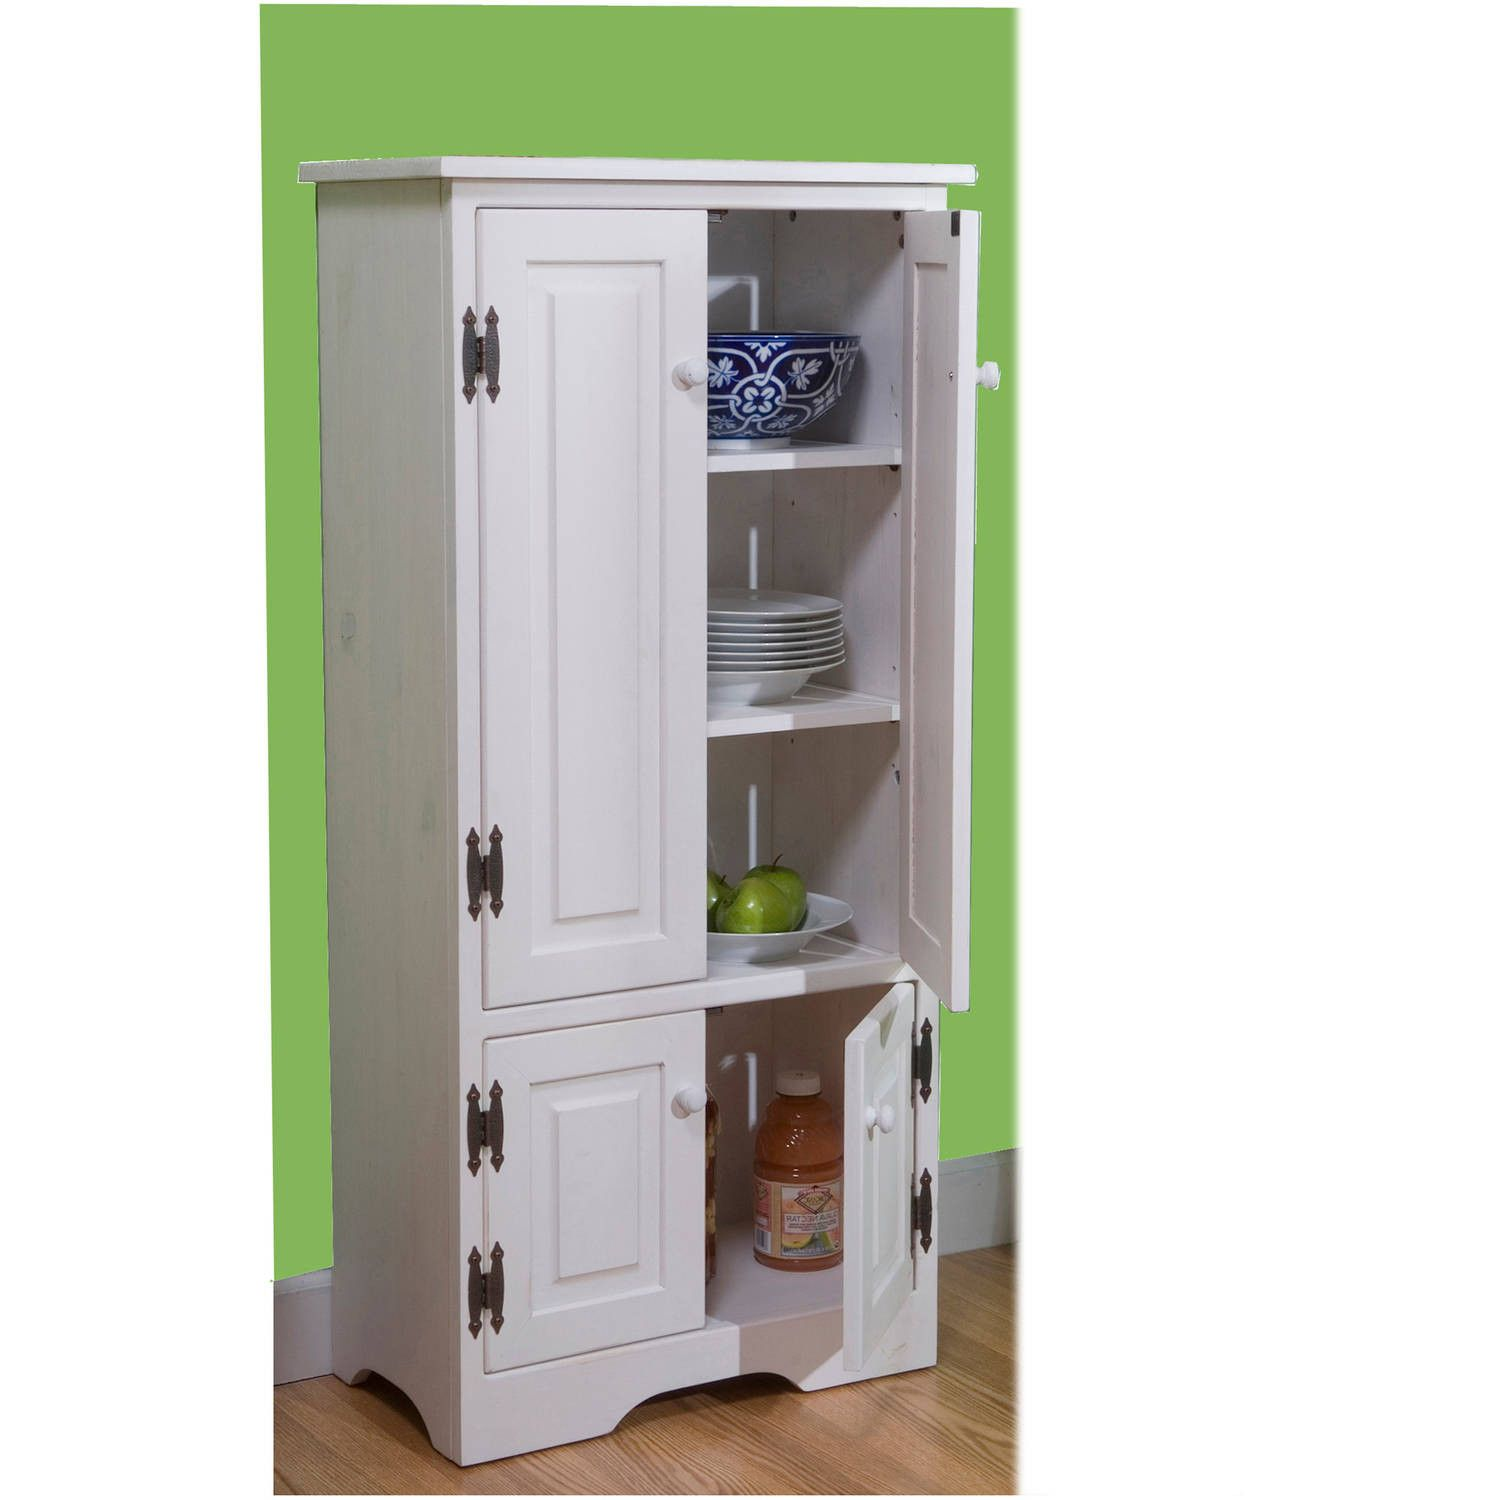 2019 Narrow White Storage Cabinet Kitchen Design And Layout Ideas Check More At Http